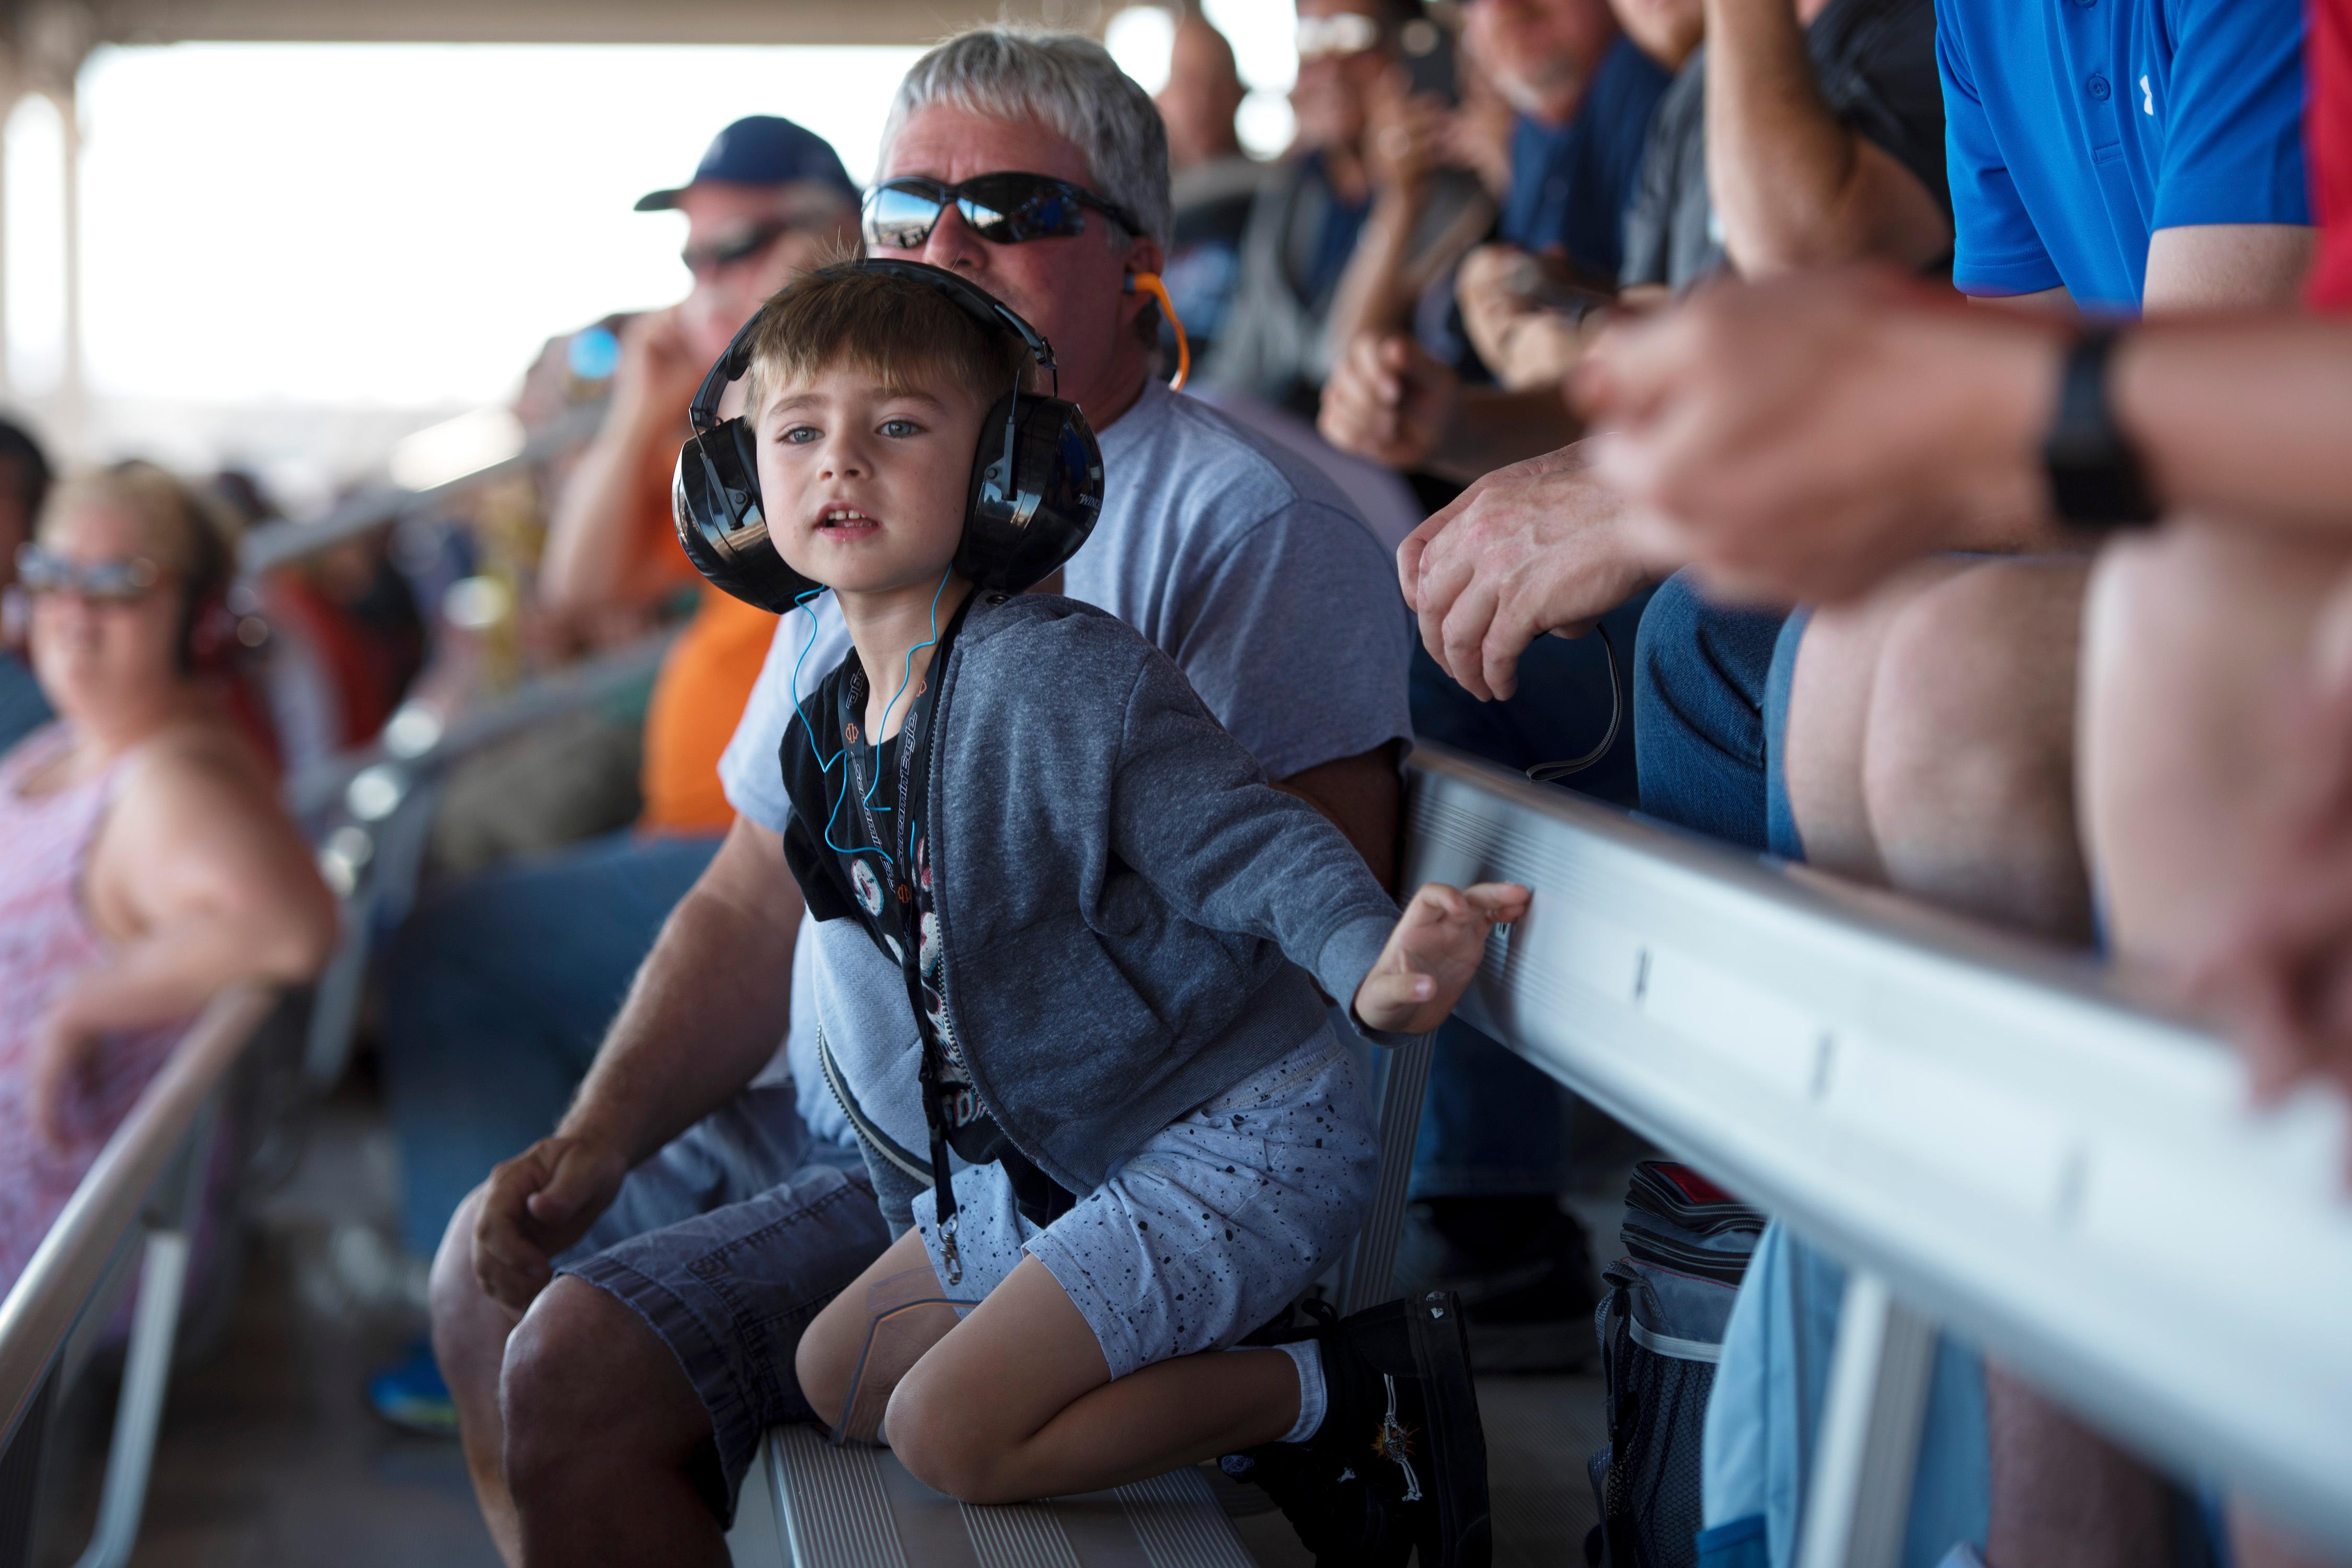 A young fan watches the action at the NHRA Toyota Nationals Sunday, October 29, 2017, at The Strip at the Las Vegas Motor Speedway. CREDIT: Sam Morris/Las Vegas News Bureau